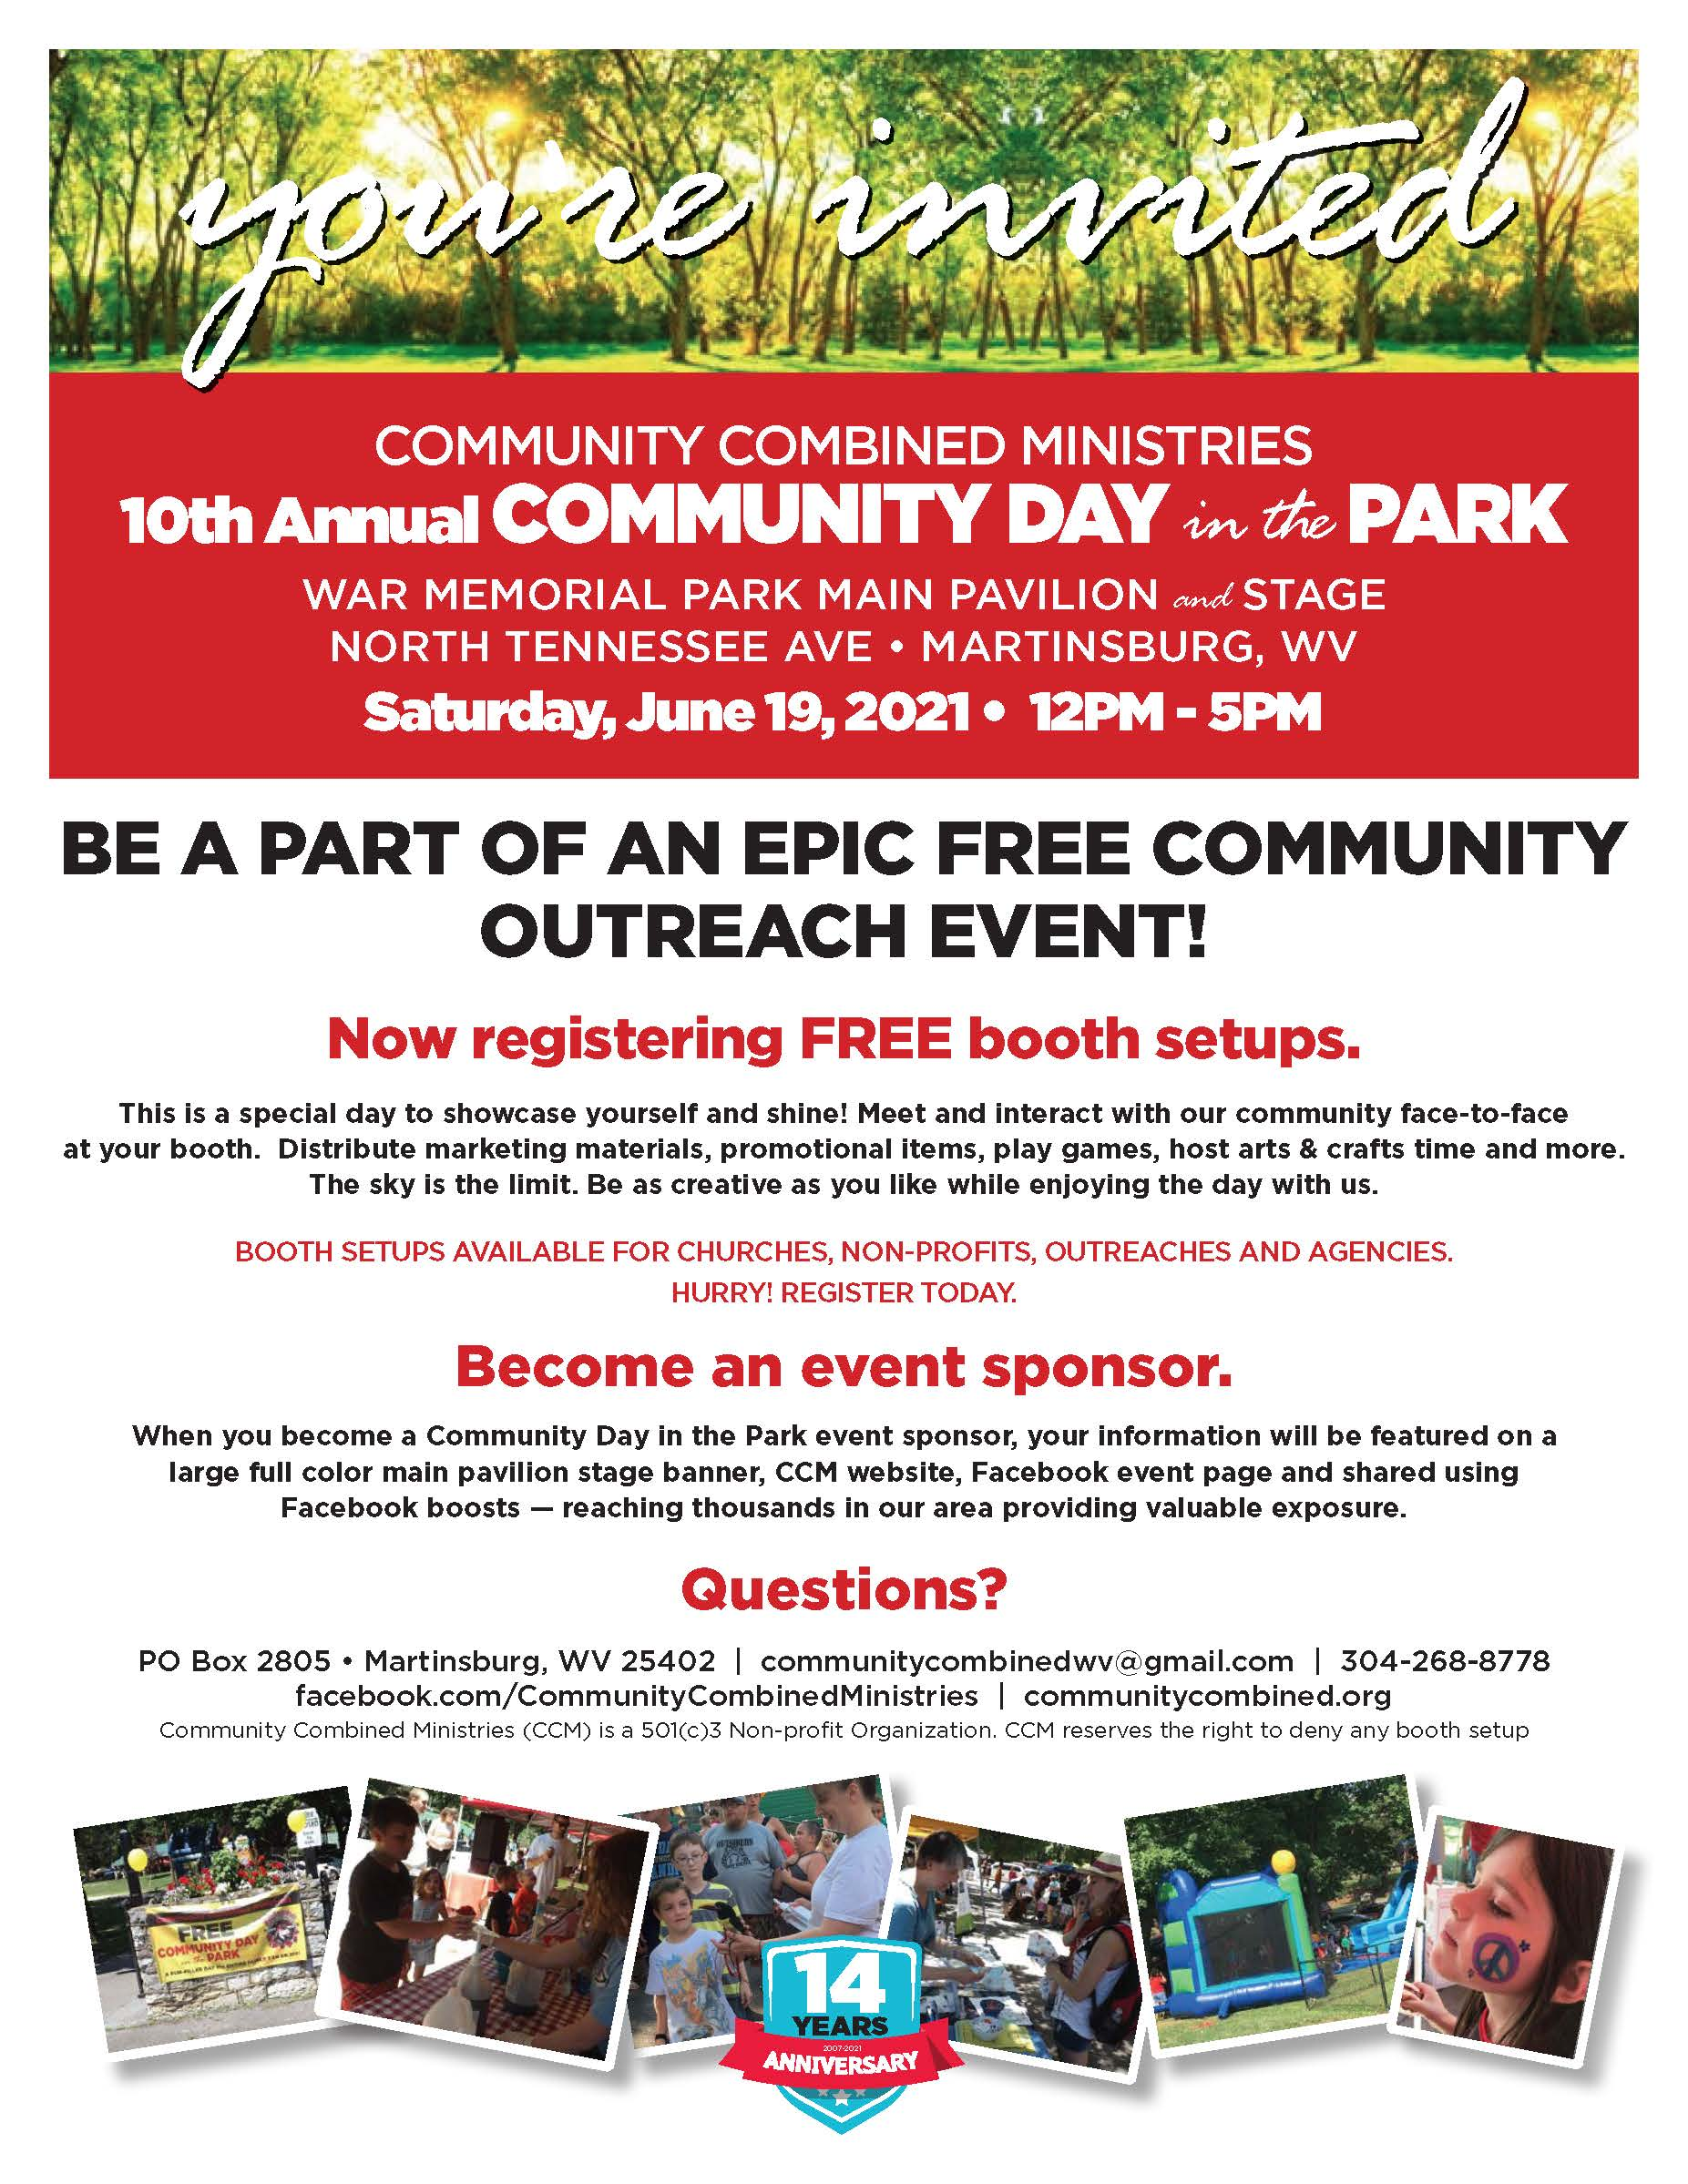 2021 Community Combined Ministries Day in the Park june 15 2021 Booth and Sponsor information download pdf flyer by clicking image caption: opens new tab